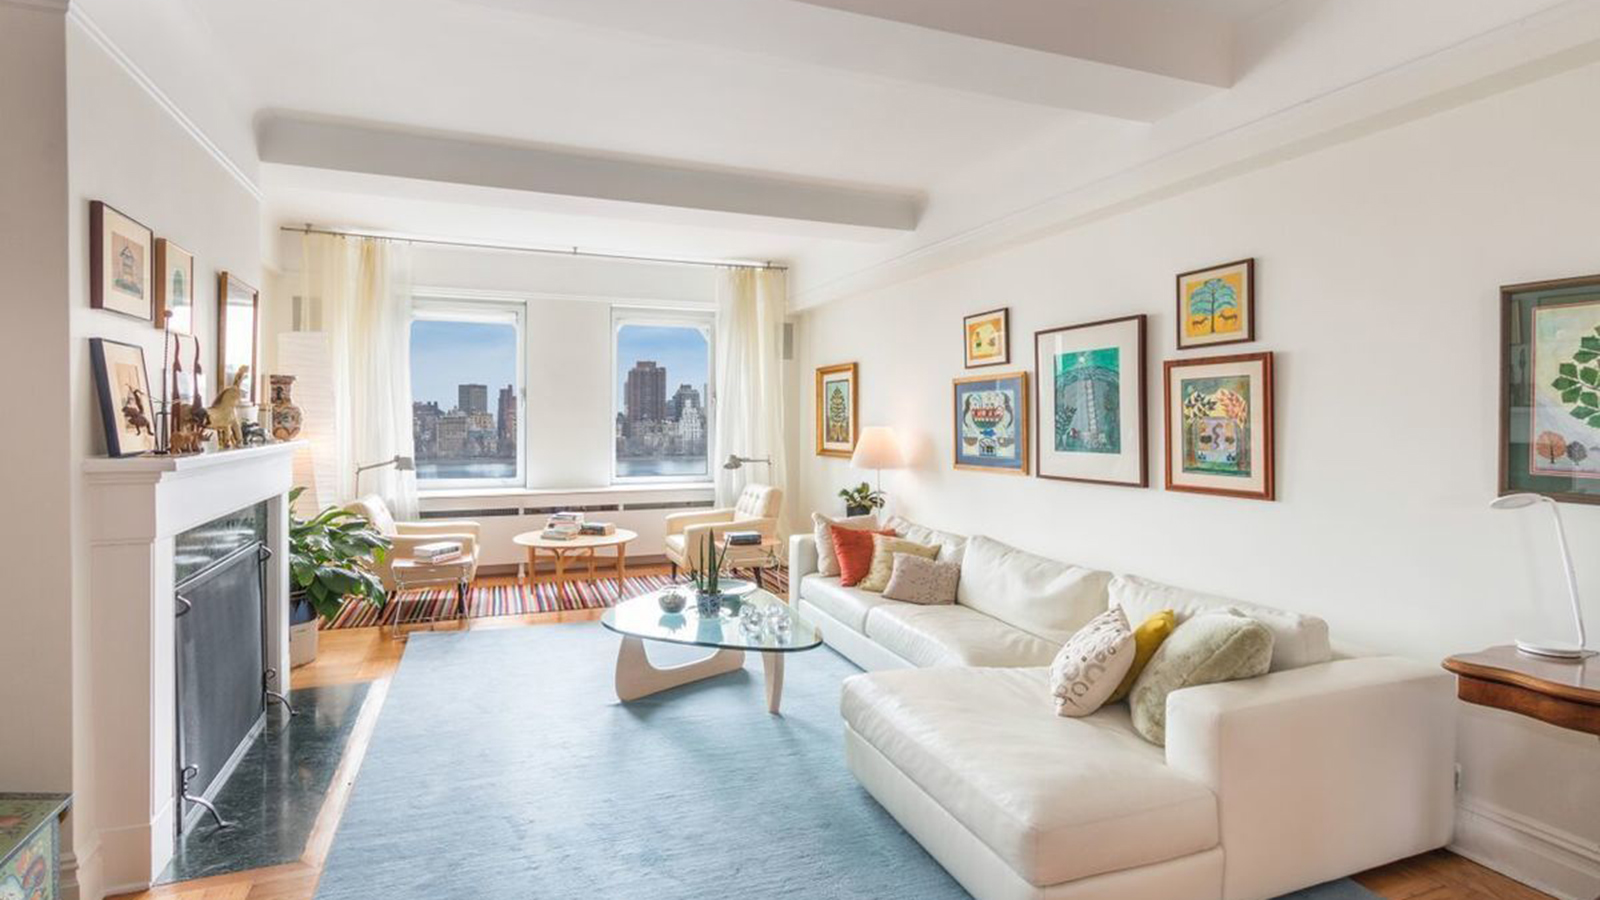 The Cherbourg, 322 Central Park West